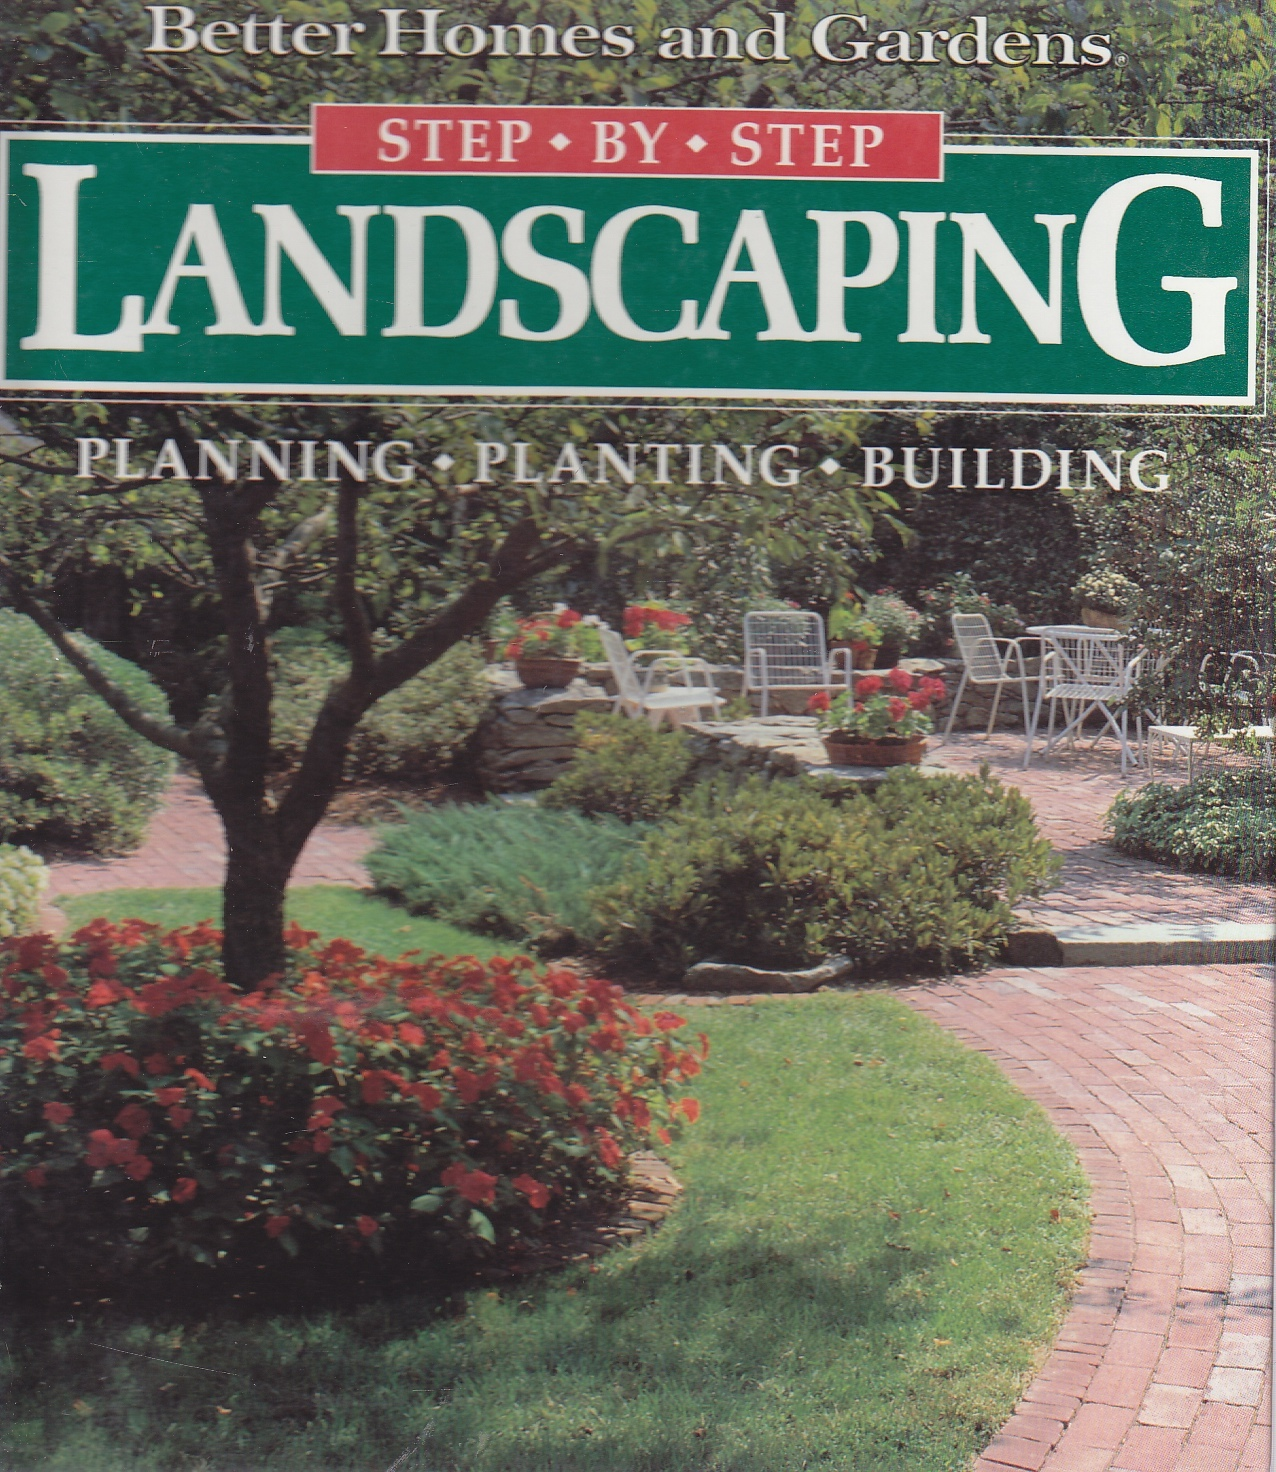 Image for Landscaping  Planning, Planting, Building (Better Homes and Gardens(R): Step-by-Step Series)